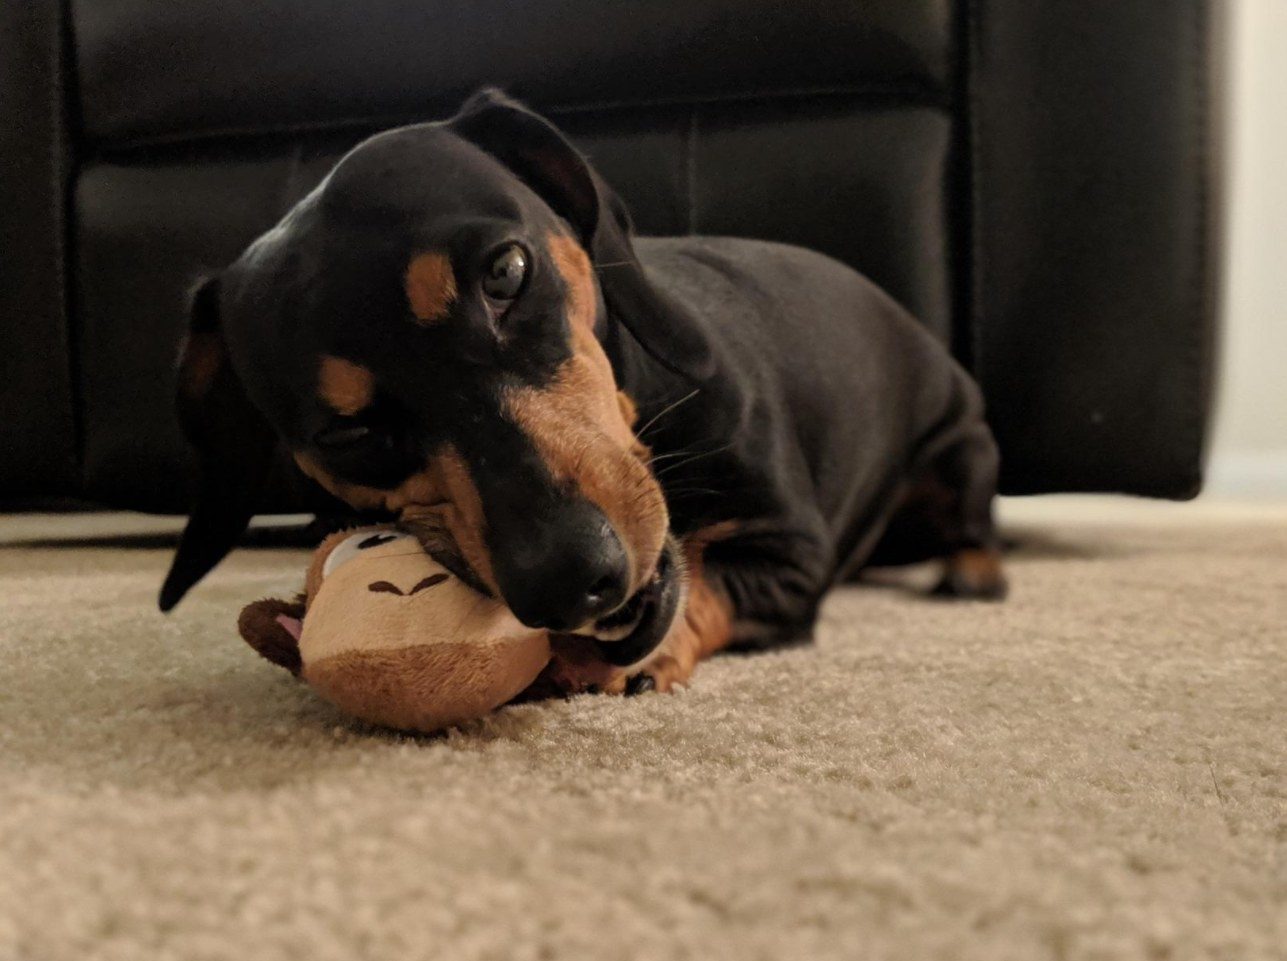 A dachshund chewing on the chew toy